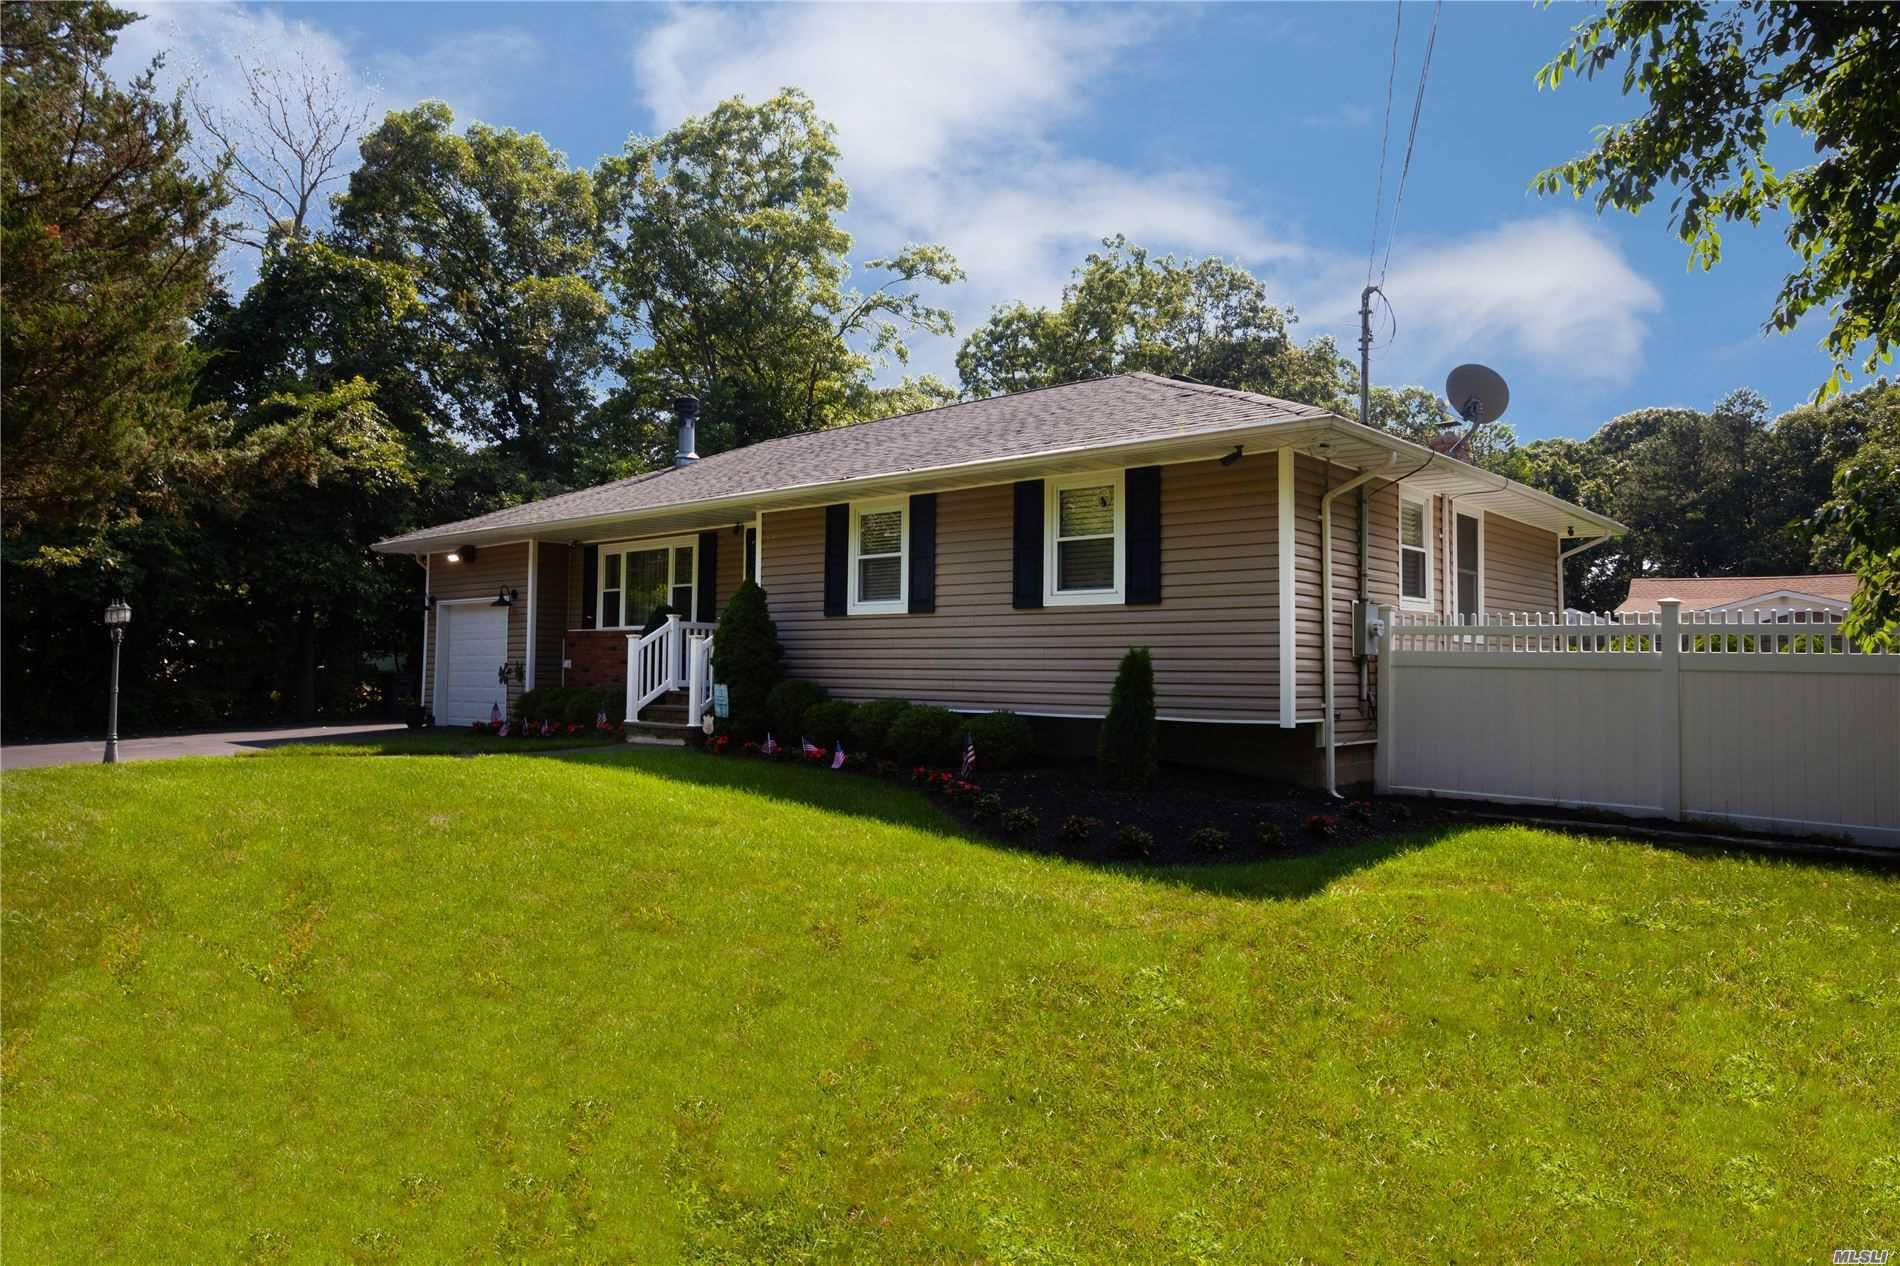 50 Westfield Rd, Coram, NY 11727 - MLS#: 3237328